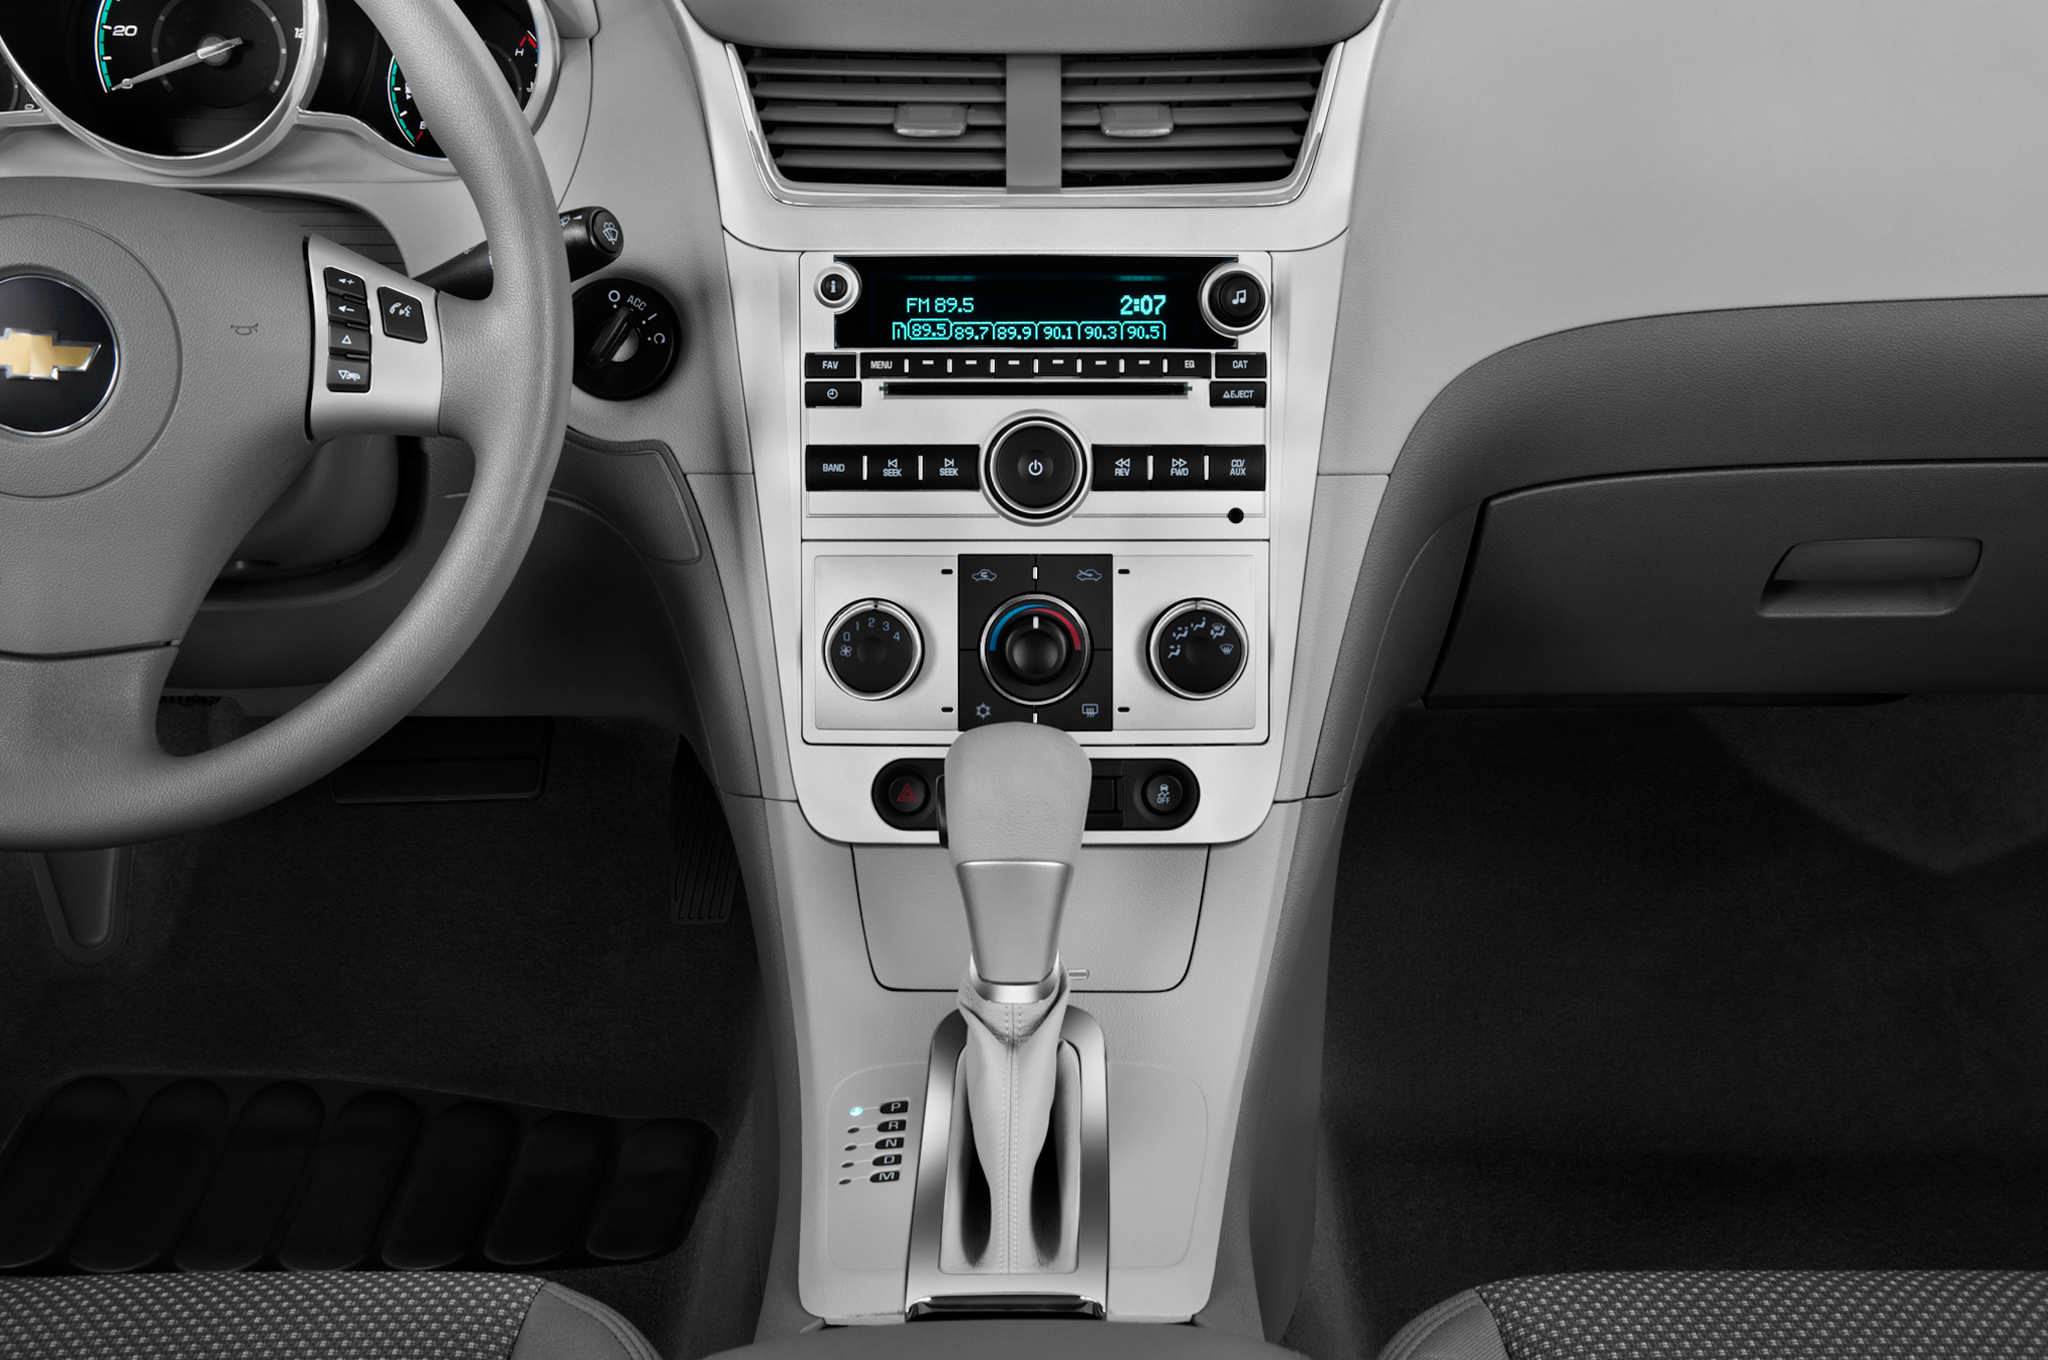 Quick Look: The 2013 Chevrolet Malibu's Interior, MyLink